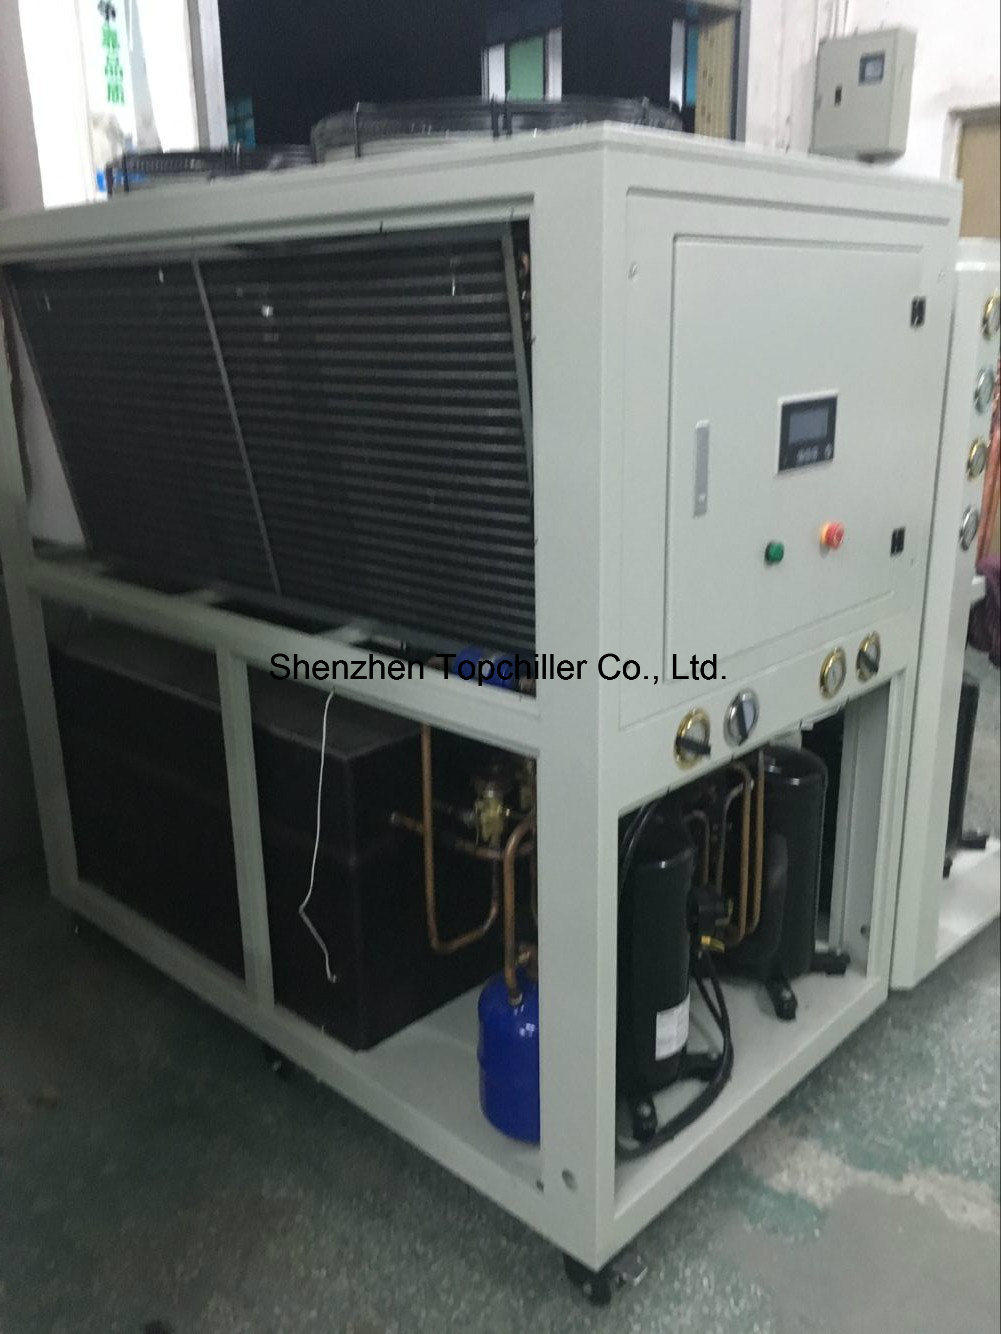 15rt Industrial Air Cooled Water Chiller for Die Casting Machine